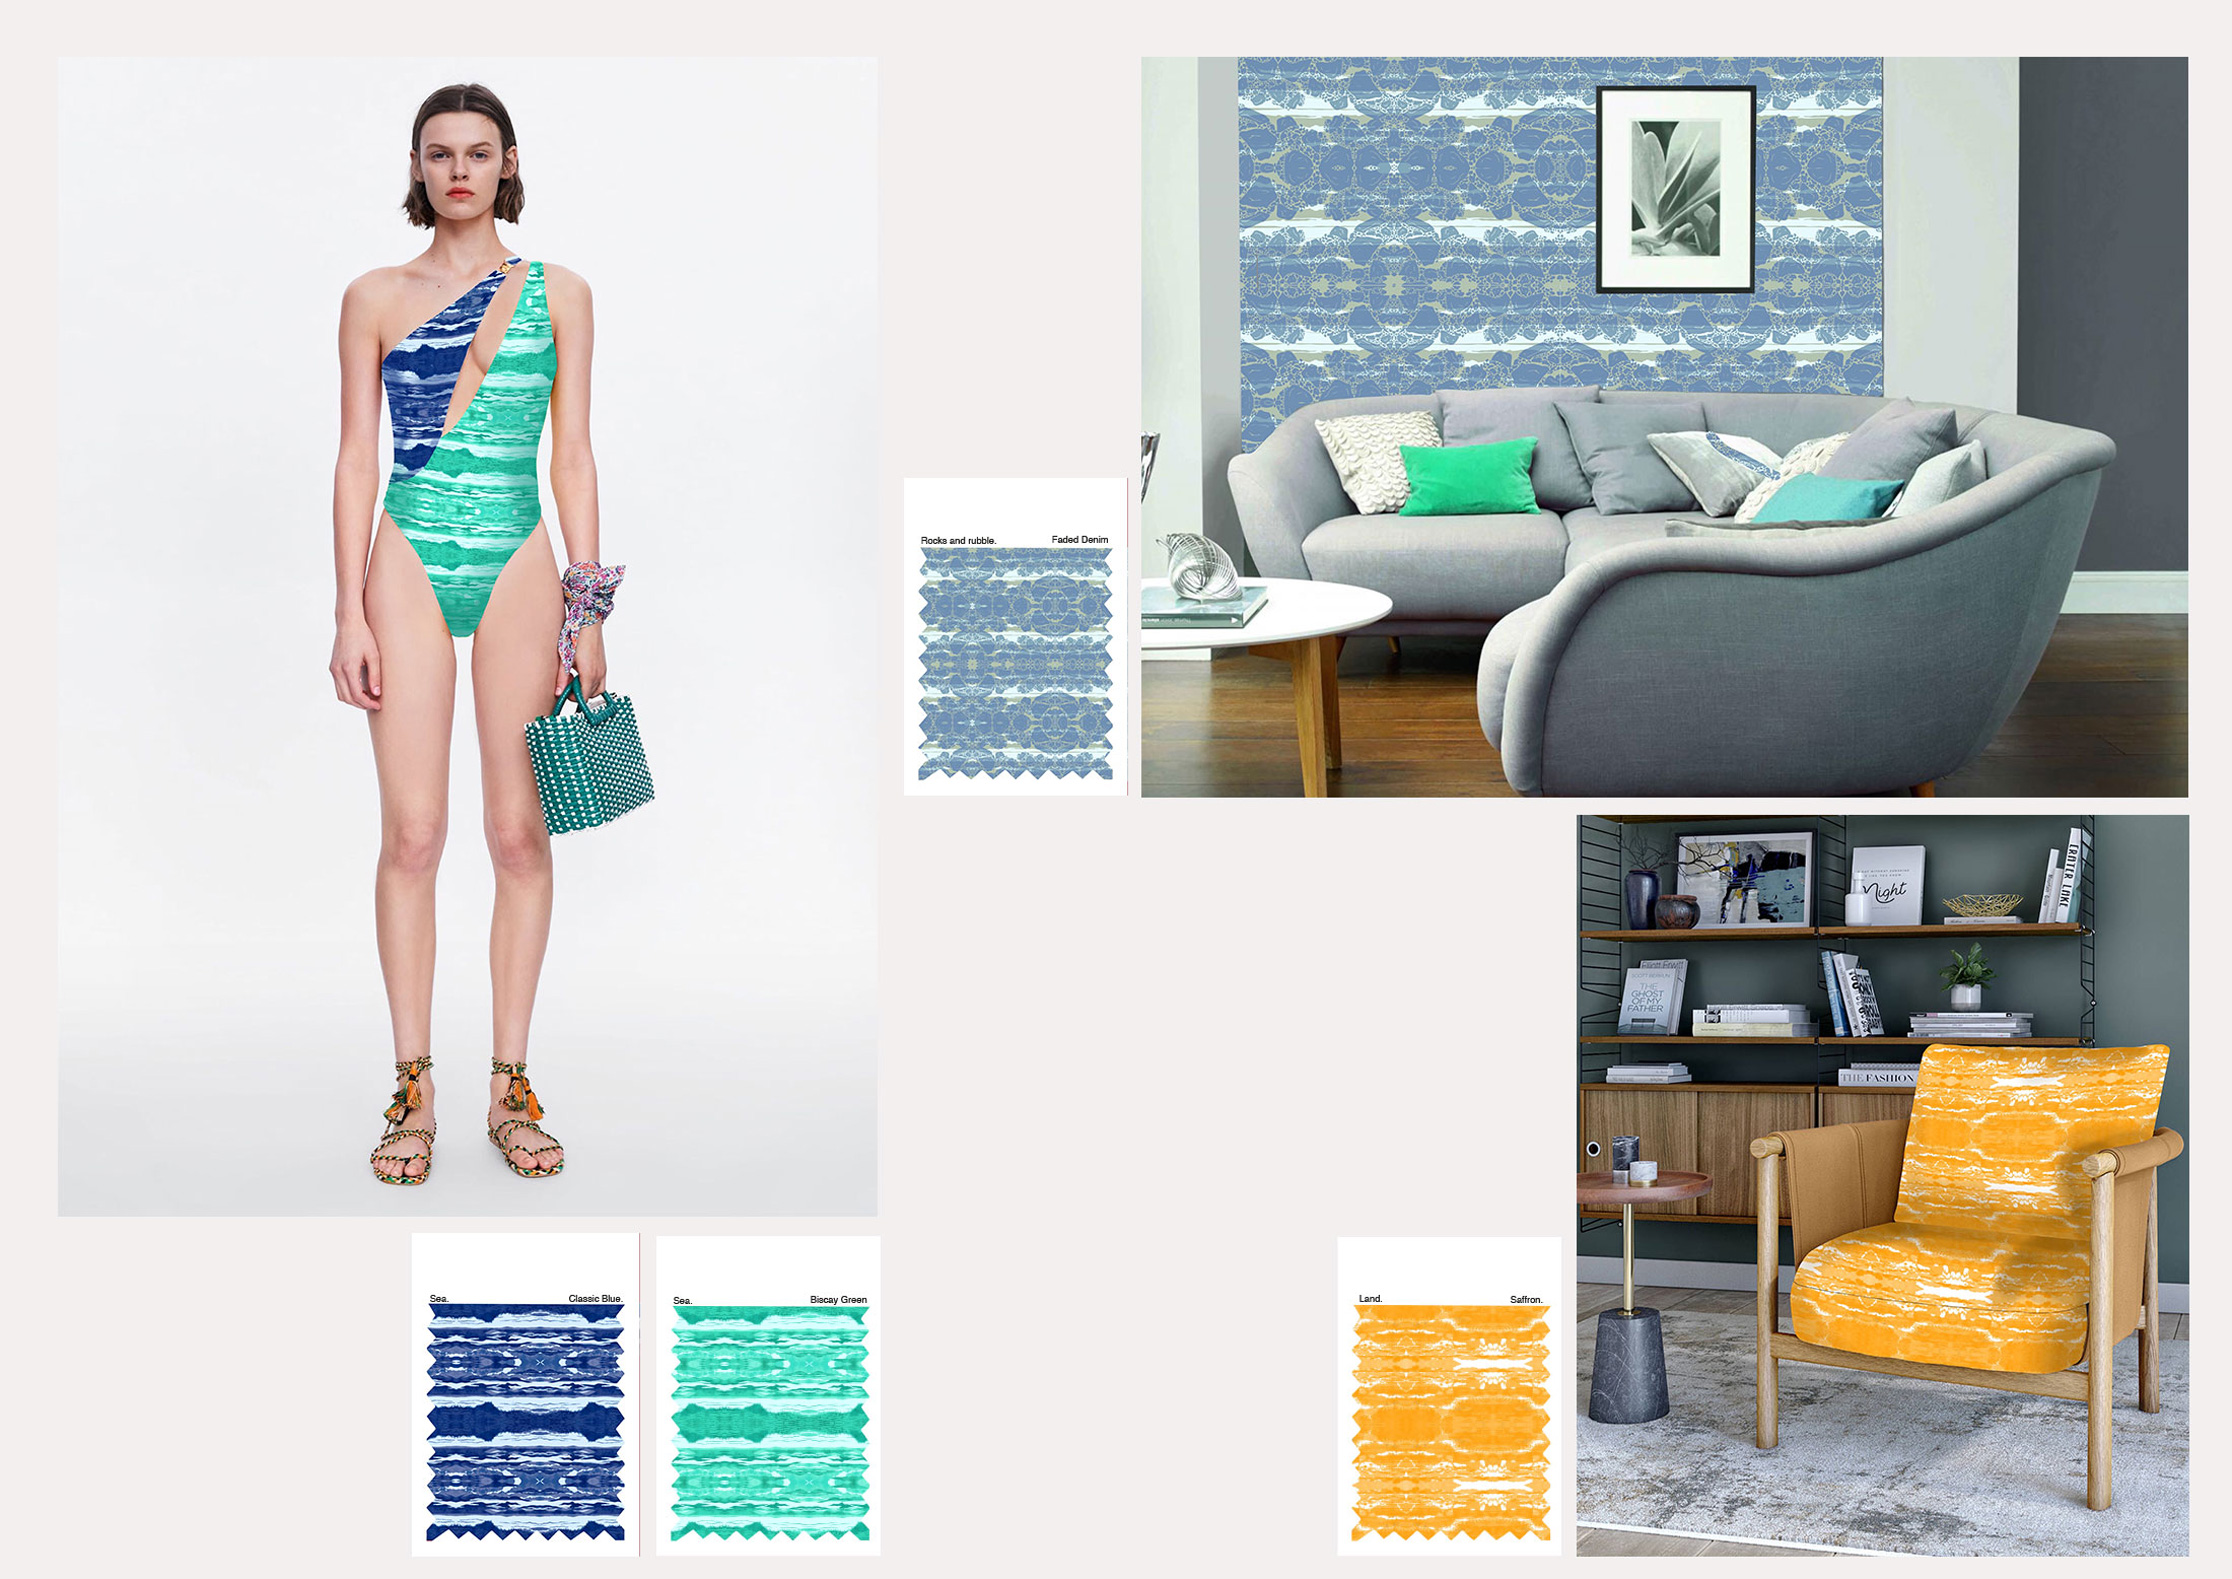 mock-up of pattern based graphics applied across swim wear, wallpaper and soft furnishings